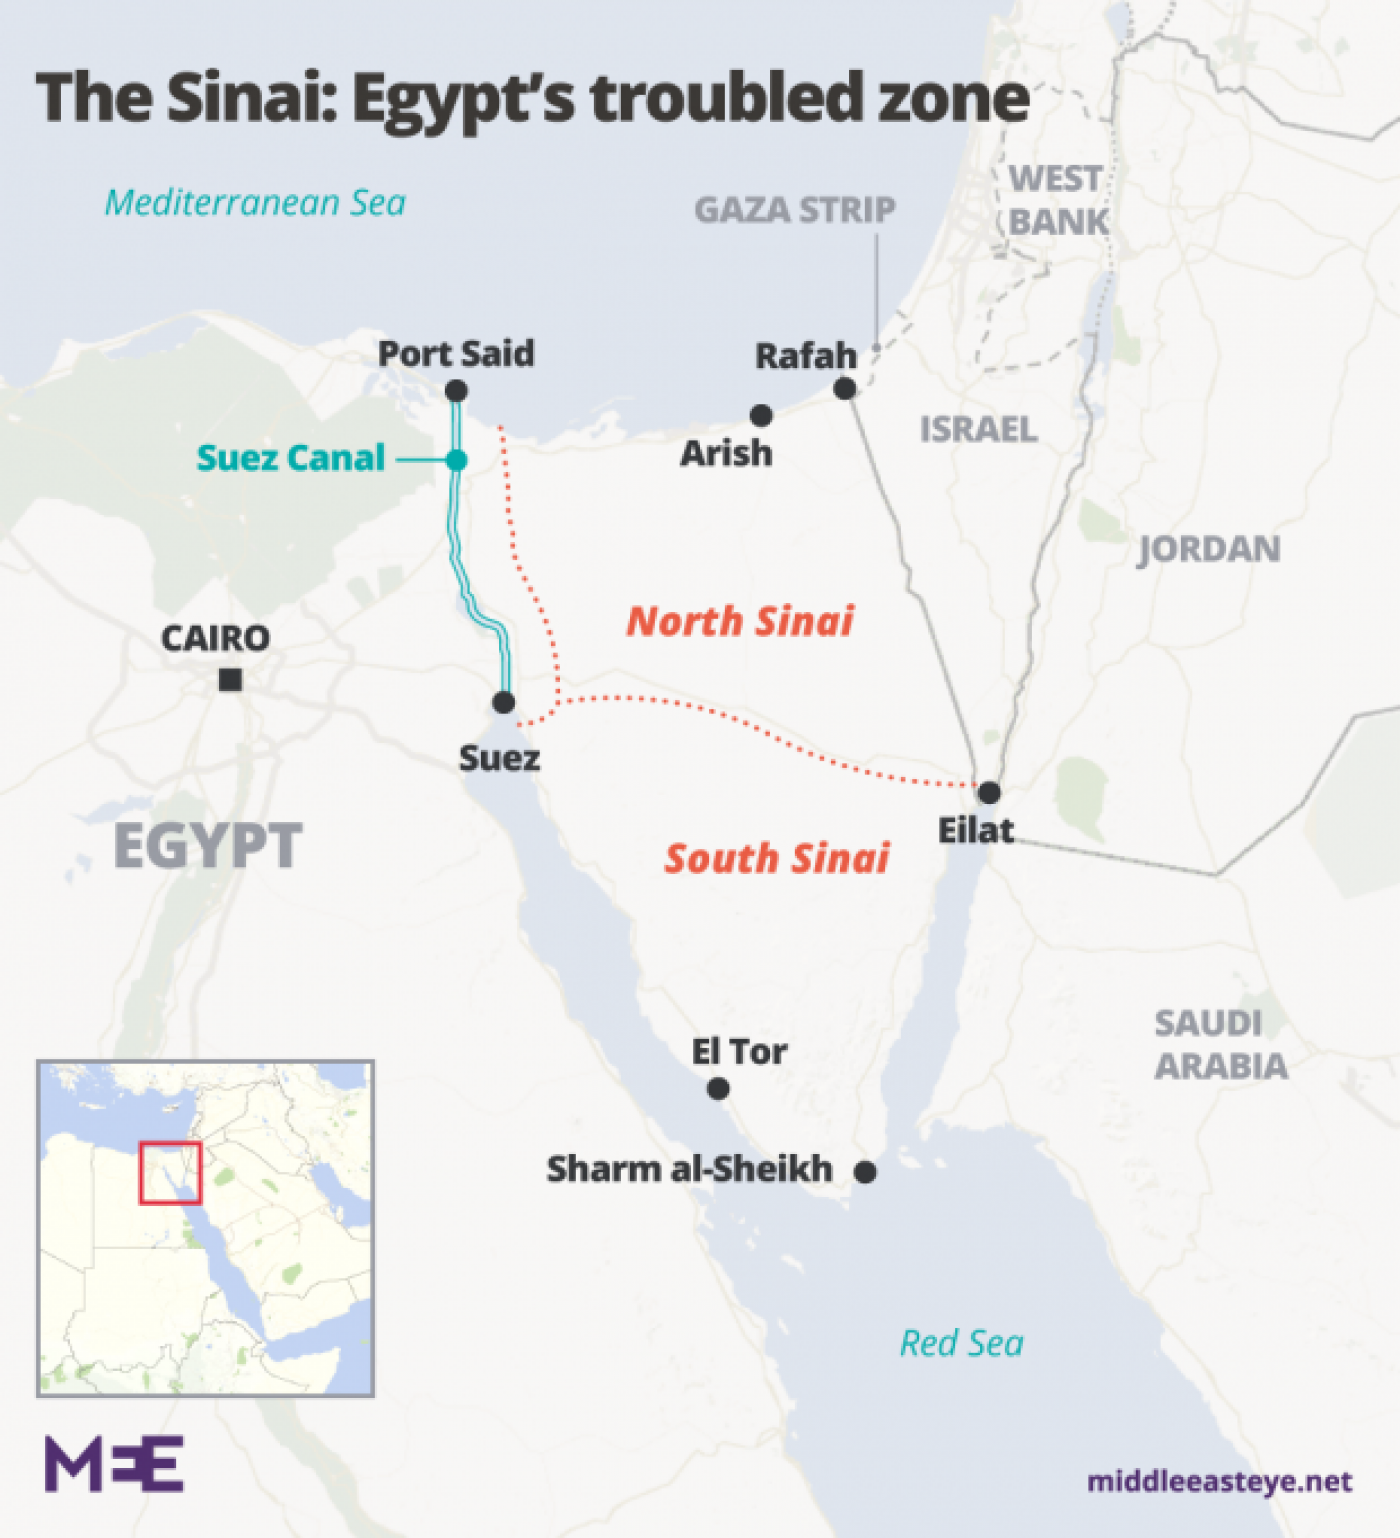 Eid turned into a funeral': Sinai attack leaves Egyptian